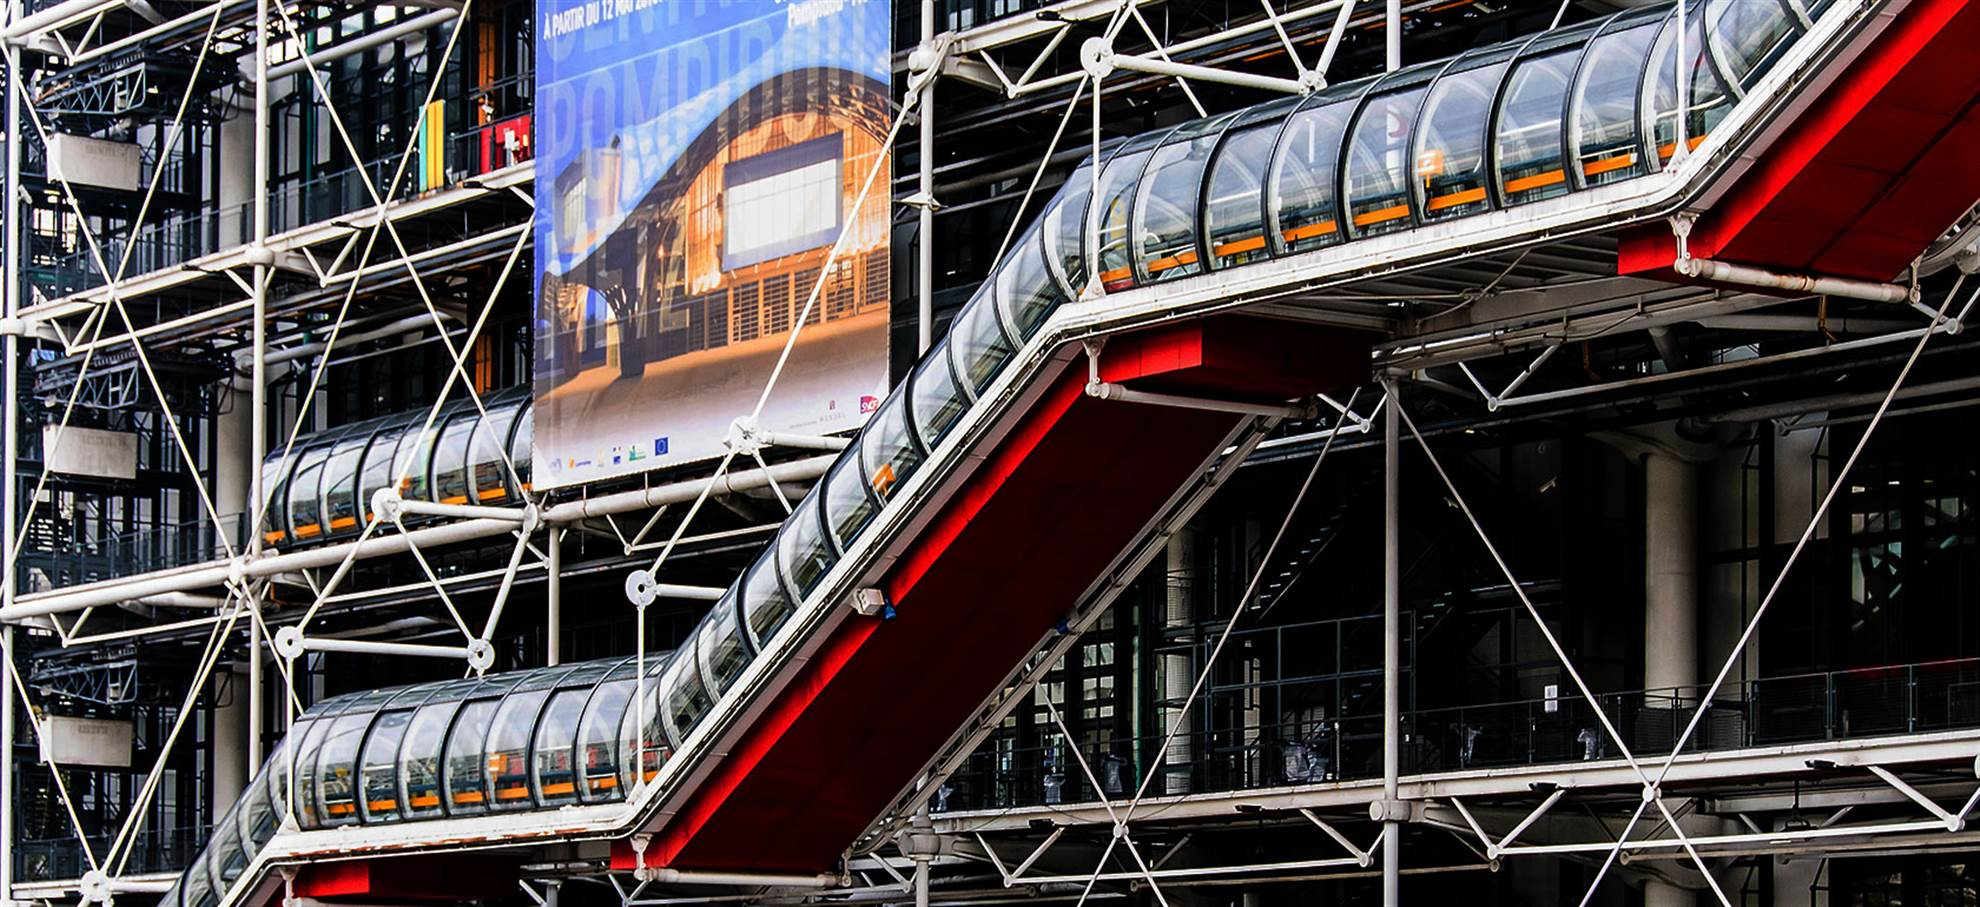 Centre Pompidou - Museum & Exhibition